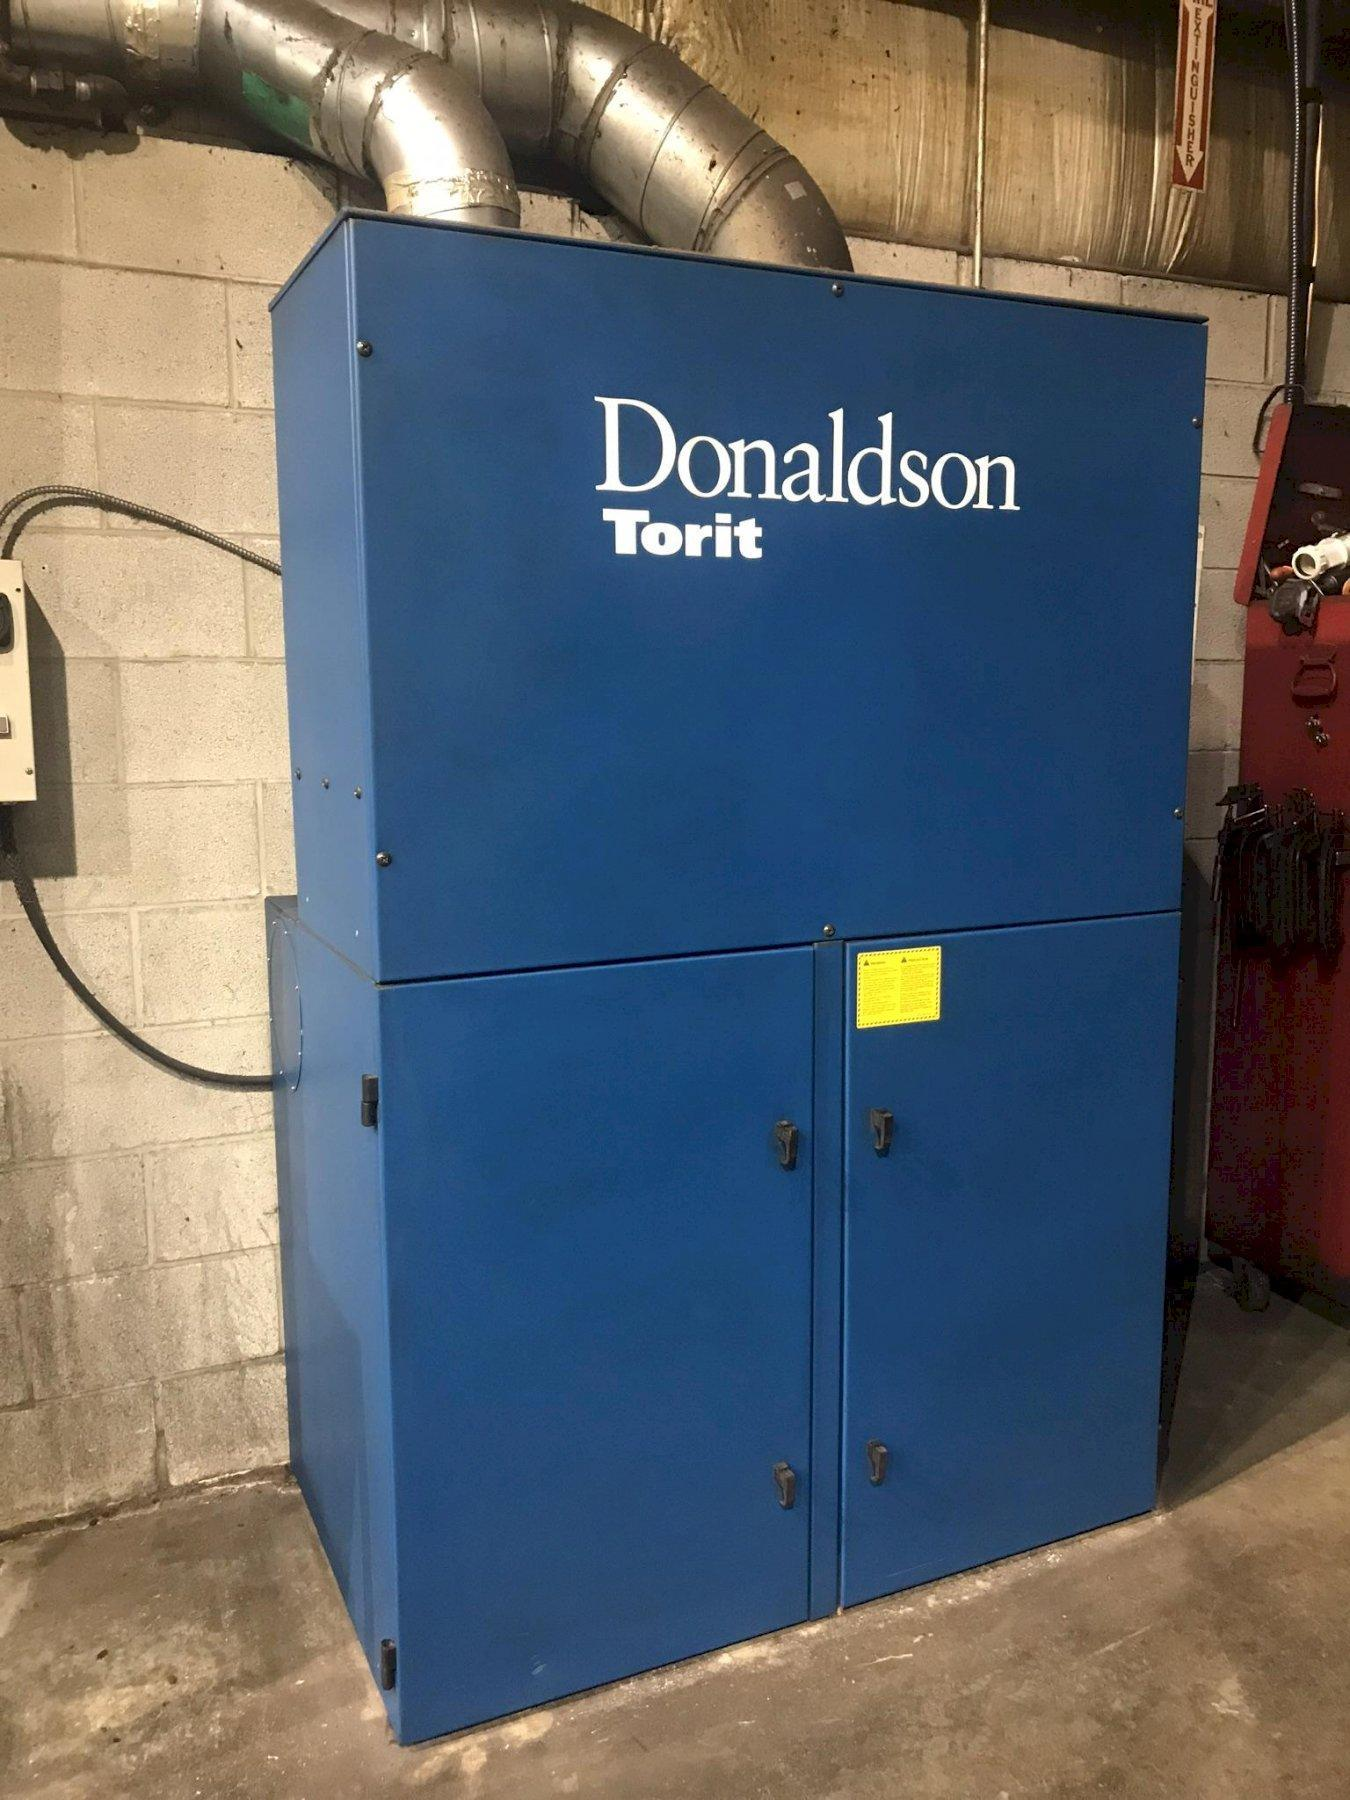 USED DONALDSON TORIT VIBRA SHAKE DUST COLLECTOR MODEL VS3000, Stk# 10722, Year 2005